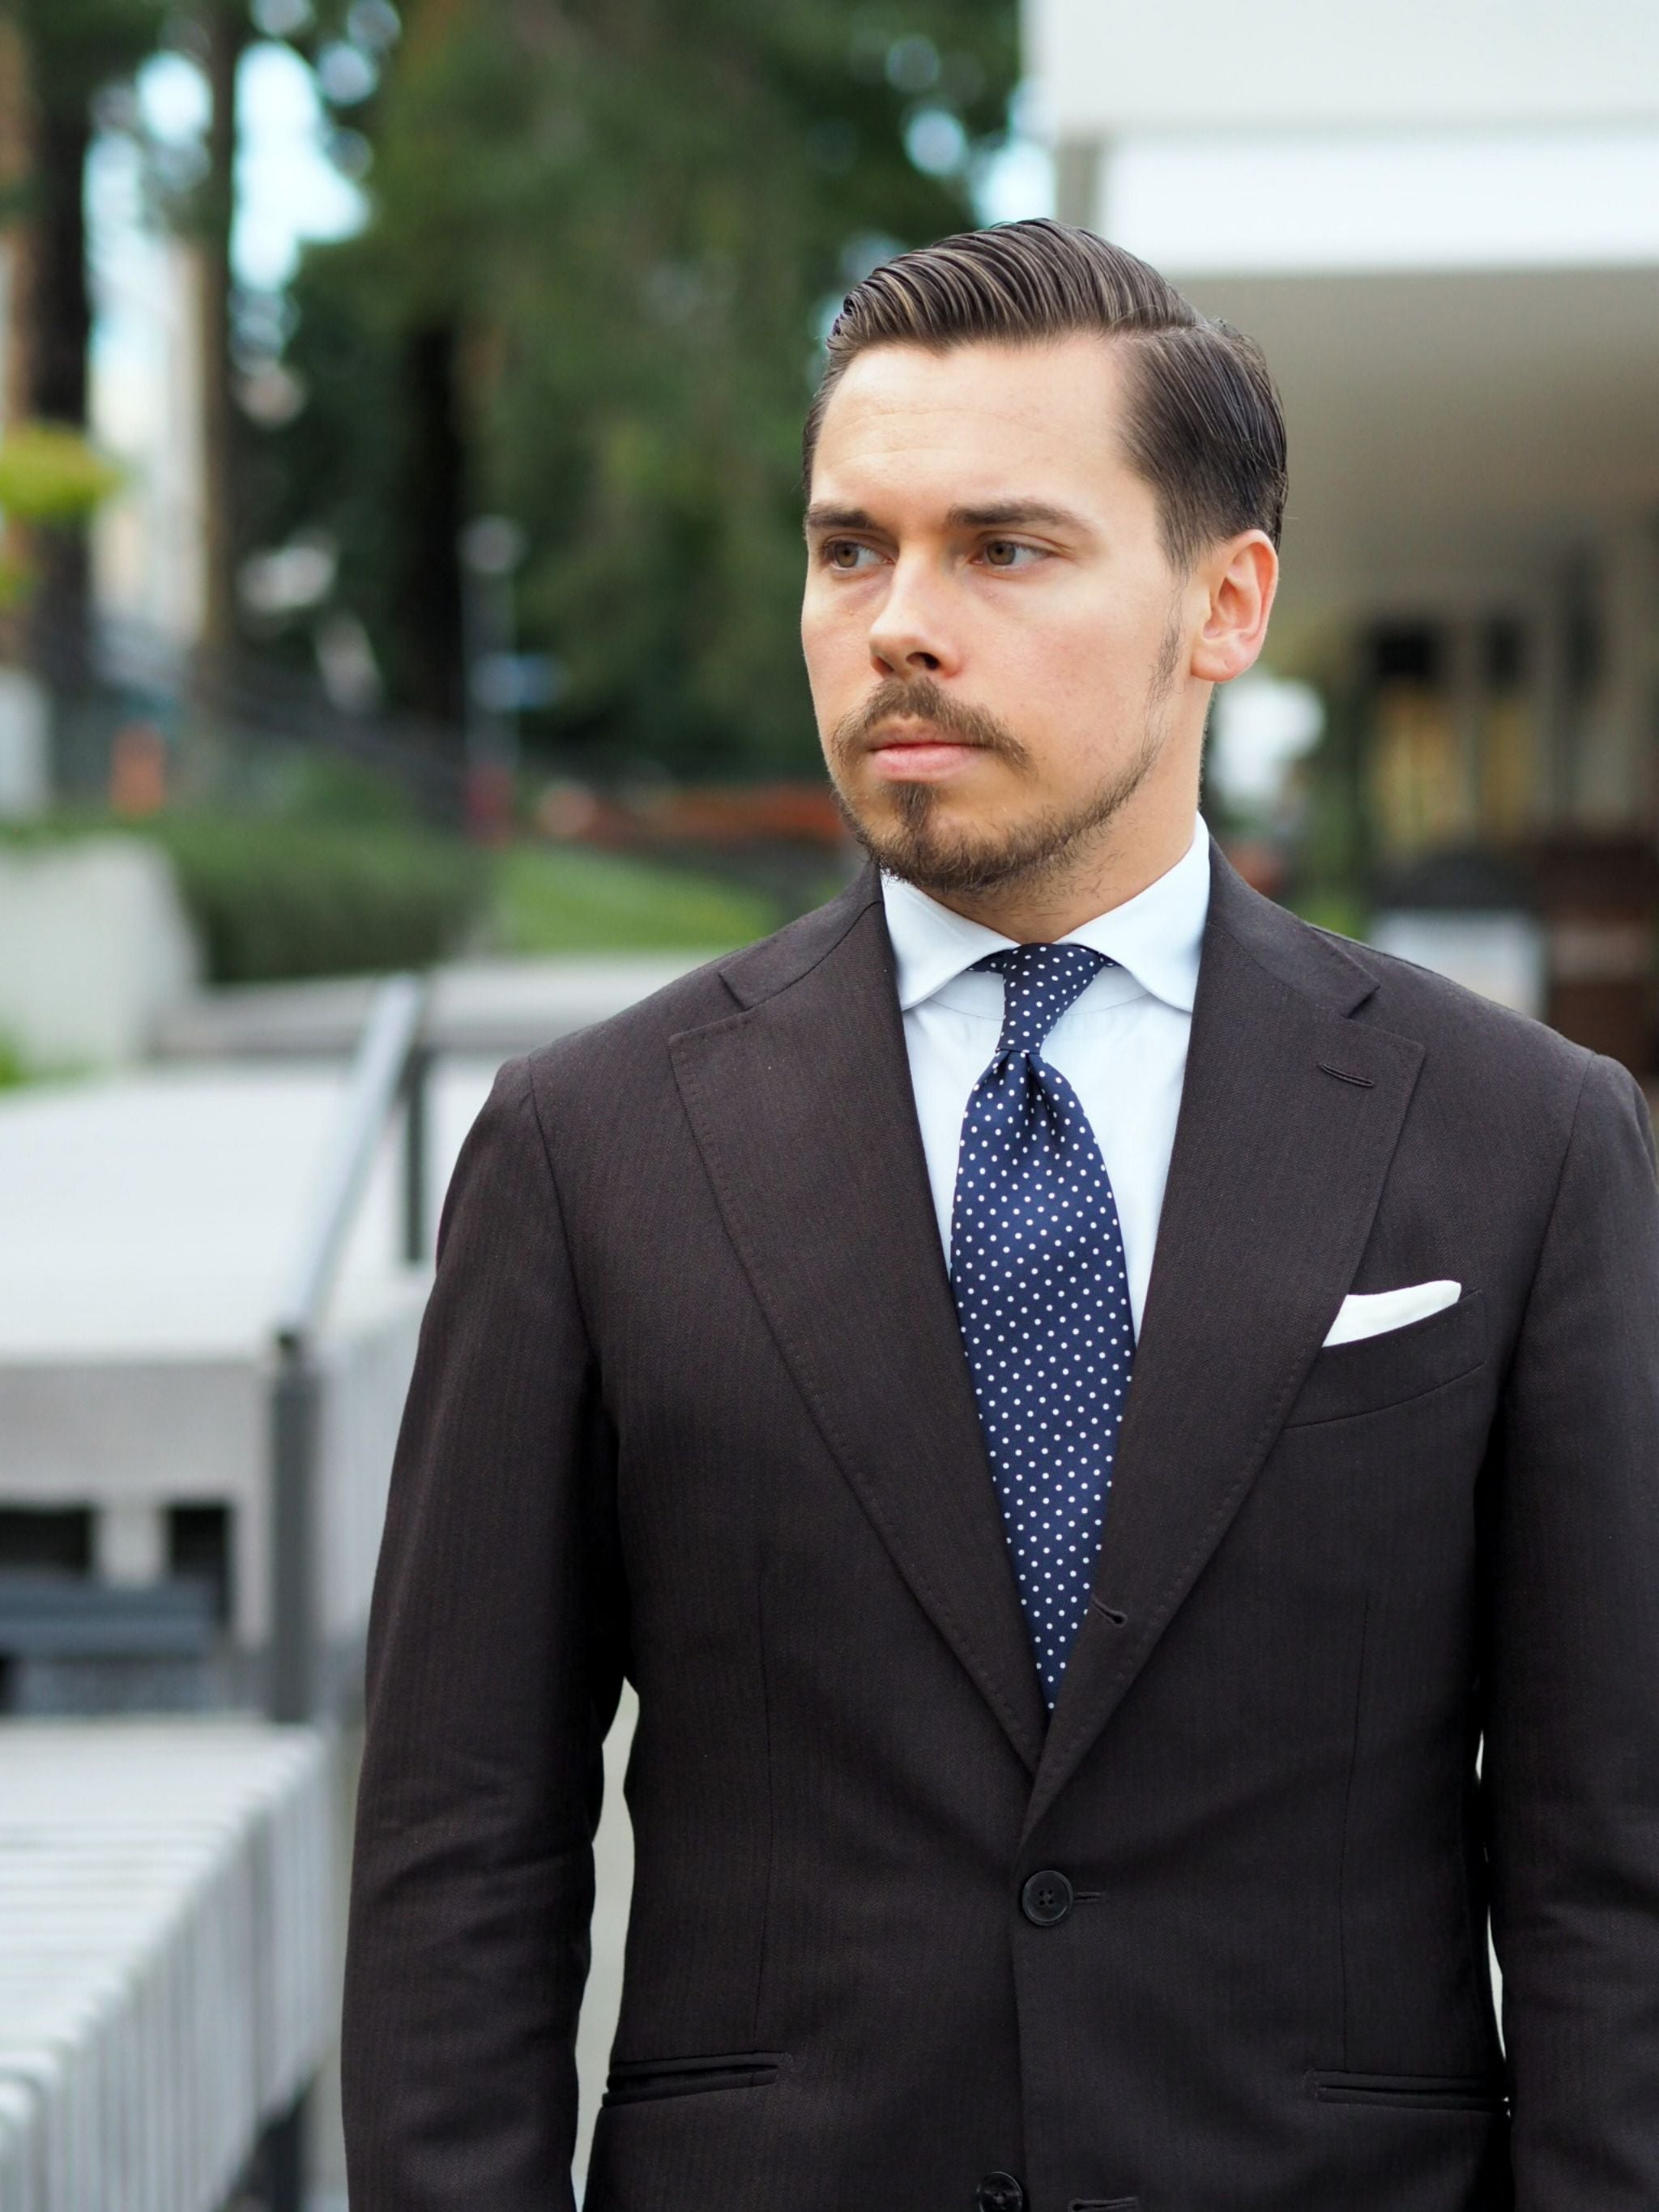 Autumnal business outfits - how to wear the brown herringbone wool suit